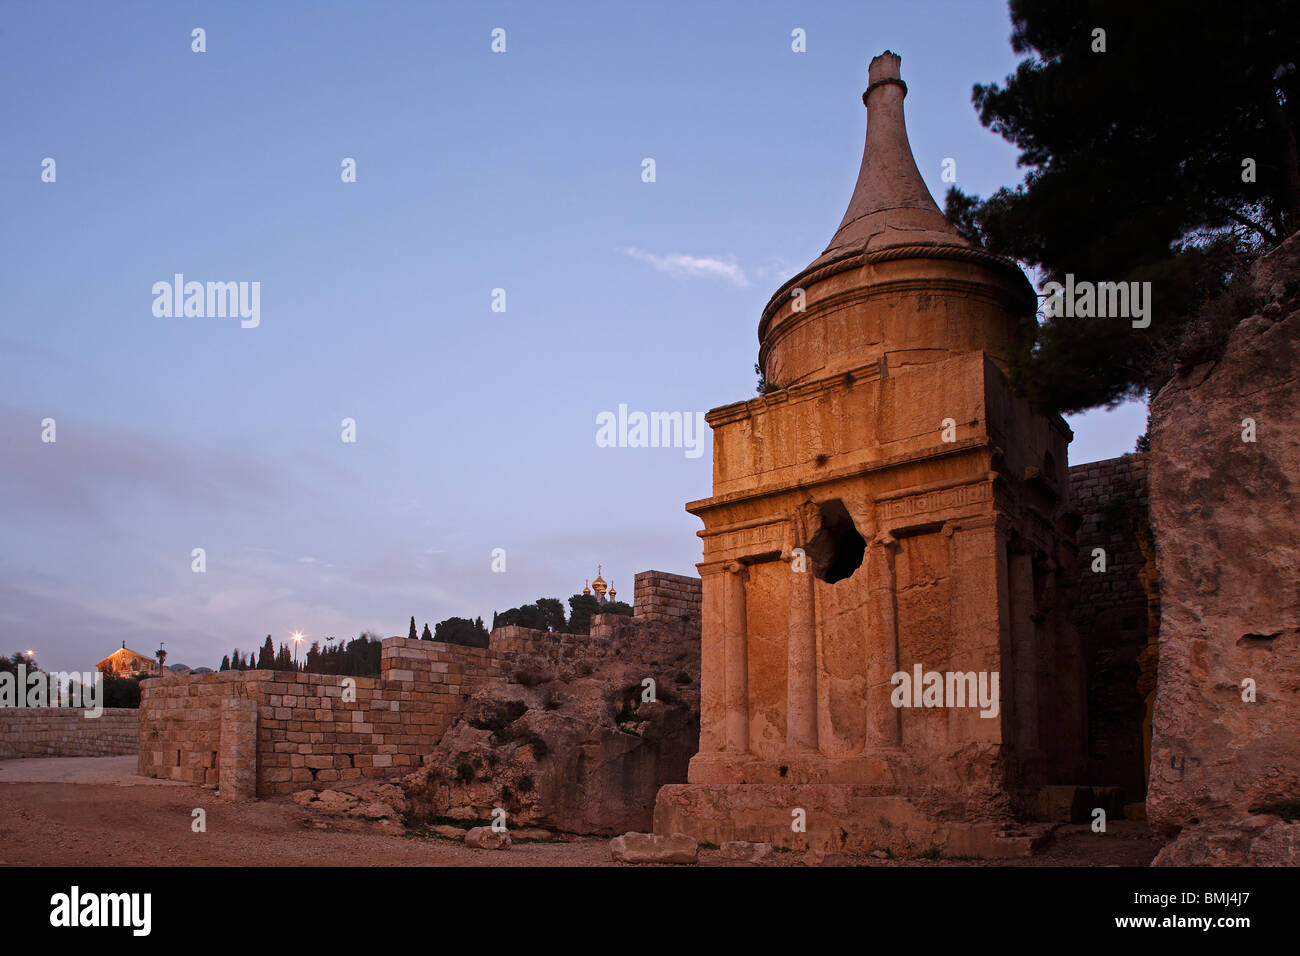 Israel,Jerusalem,Mount of Olives,Absalom's Pillars - Stock Image